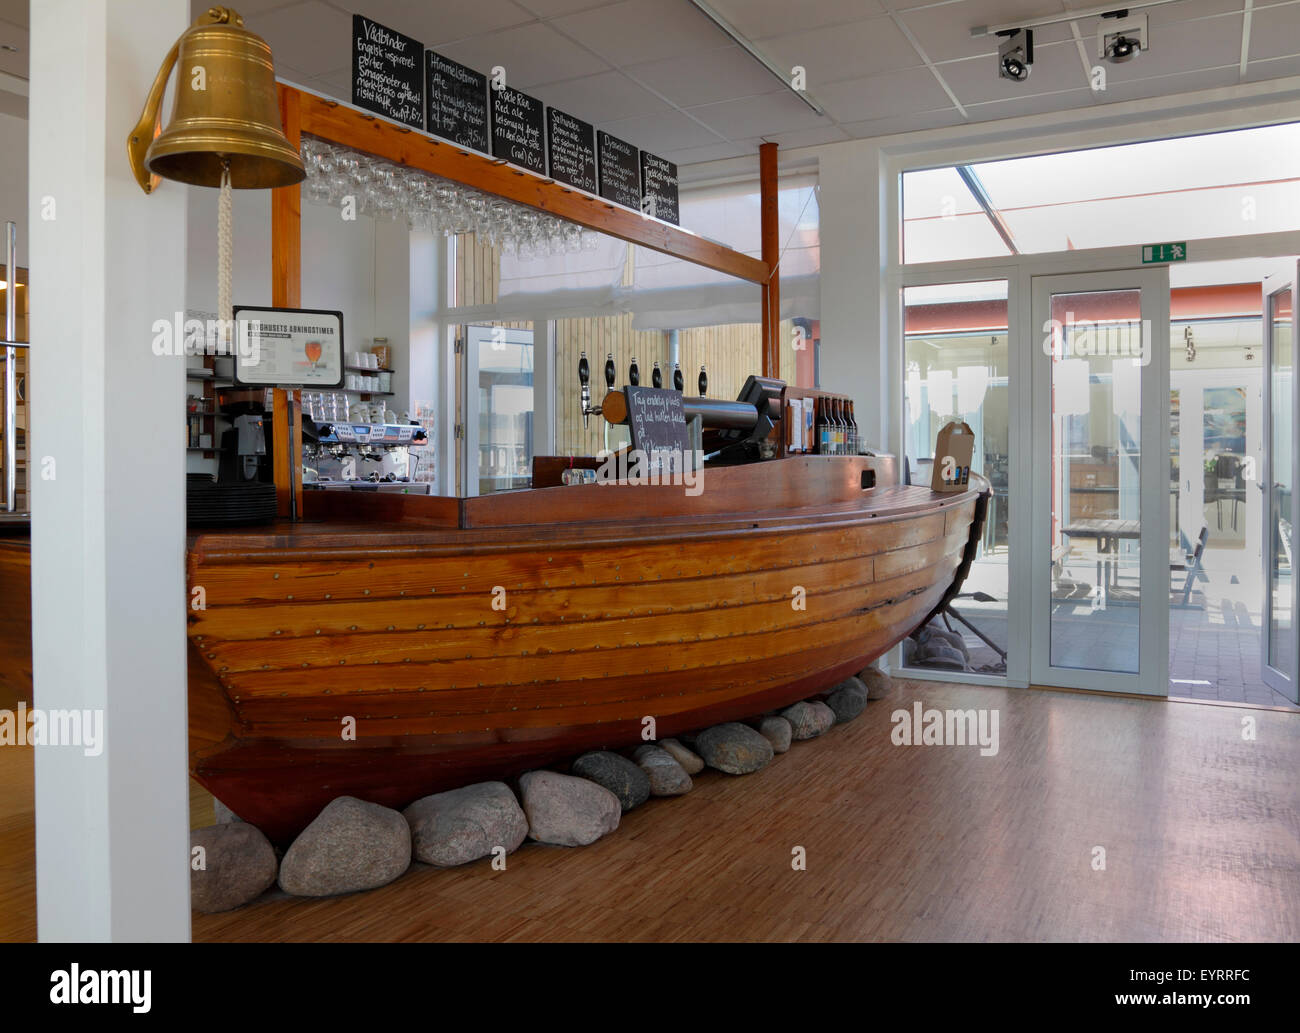 The bar formed by a viking-like boat at Halsnæs Bryghus, a local microbrewery on Hundested Harbour, Denmark - Stock Image